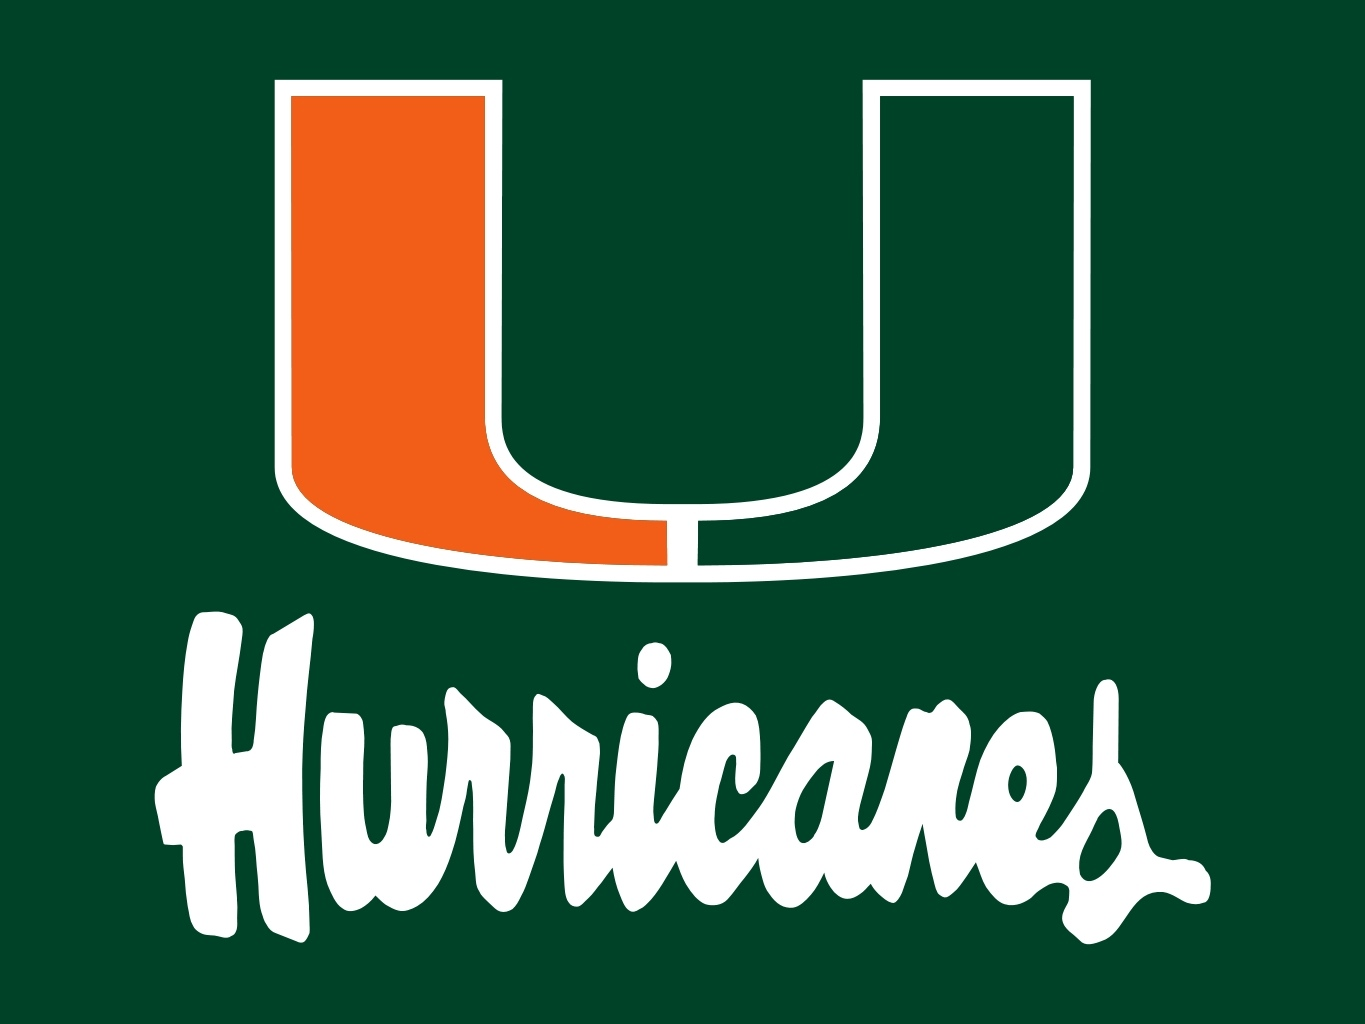 Miami hurricanes clipart png royalty free stock Free Miami Hurricanes Cliparts, Download Free Clip Art, Free ... png royalty free stock